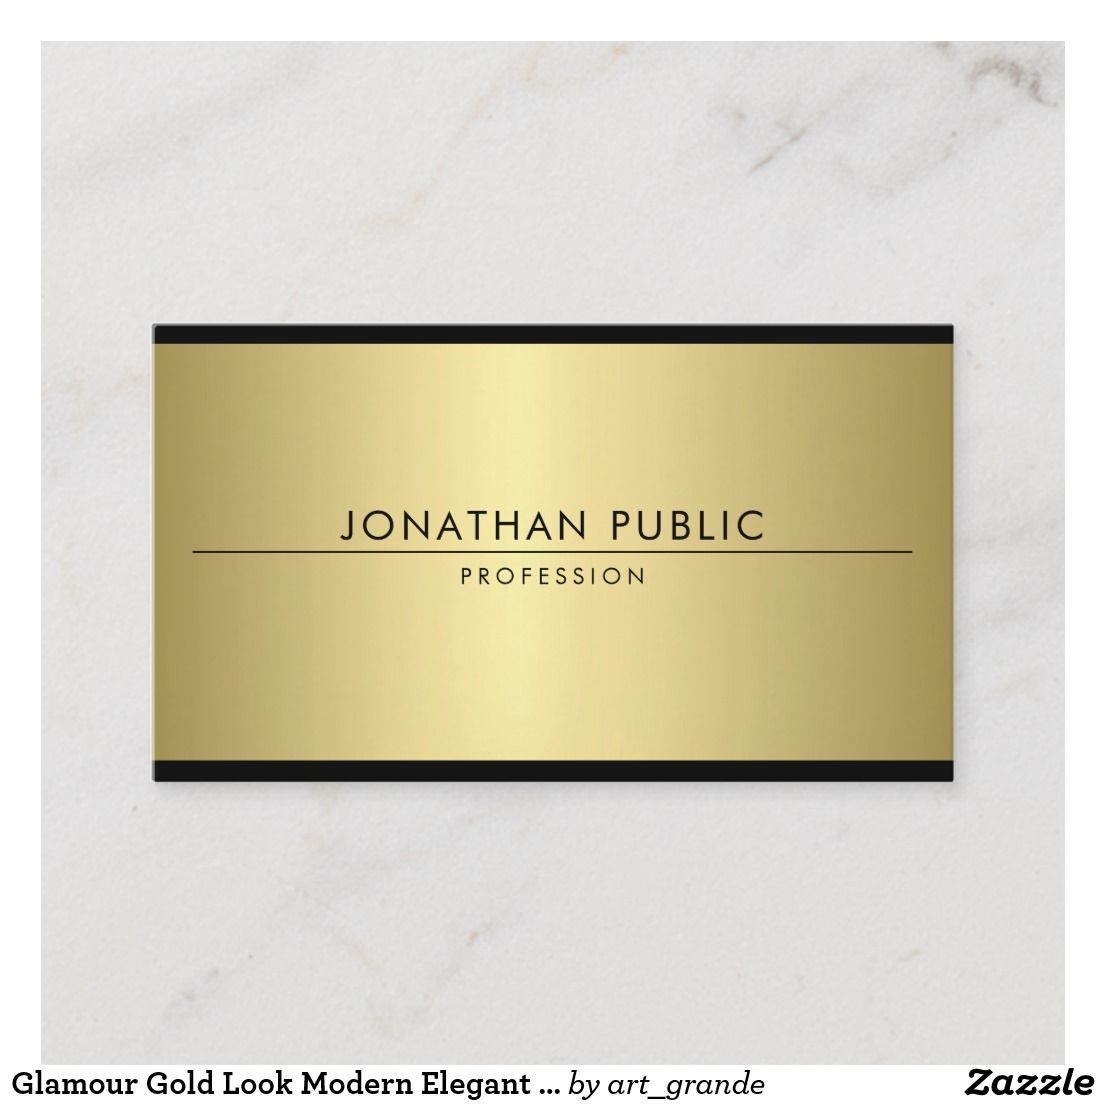 Glamour Gold Look Modern Elegant Simple Template Business